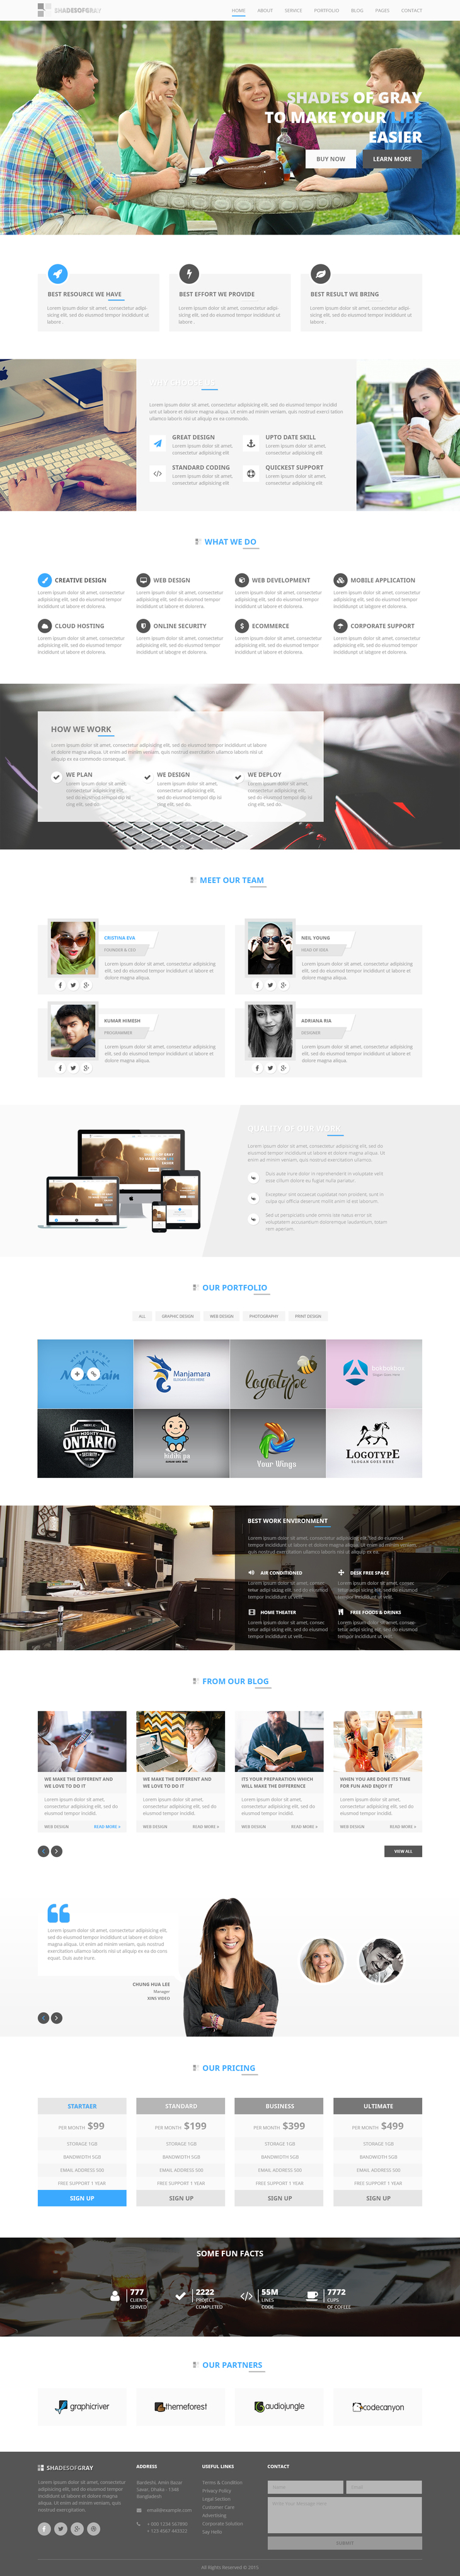 Shades Of Gray -  Free PSD Web Template preview